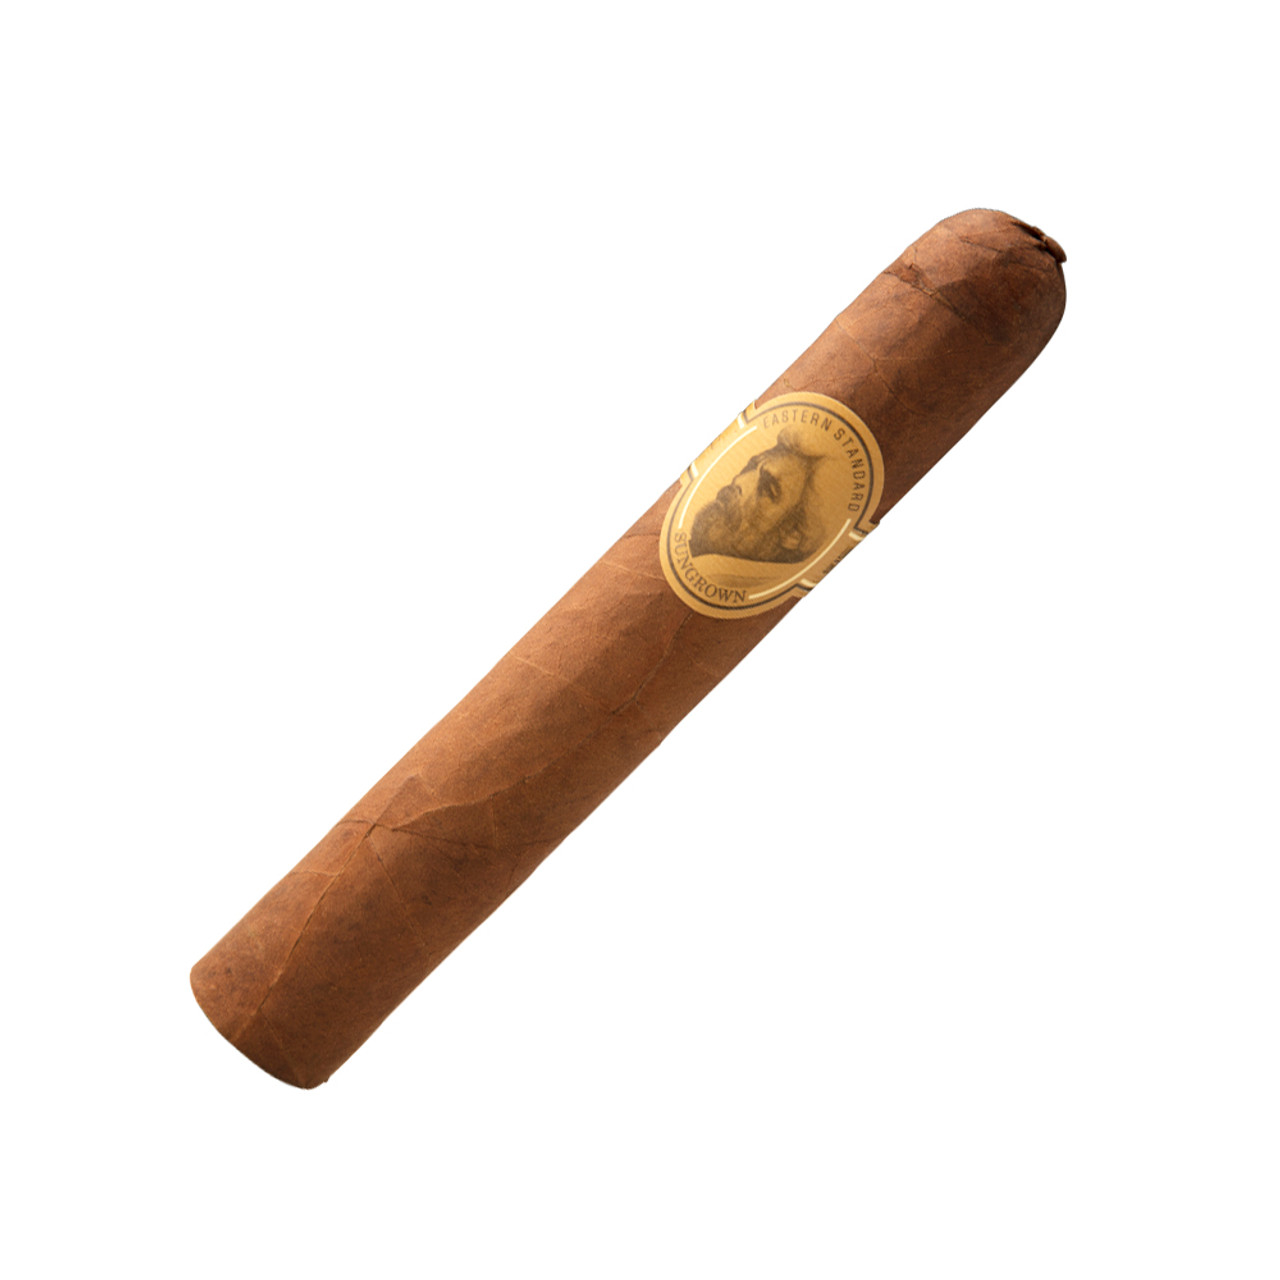 Caldwell Eastern Standard Sungrown Double Robusto Cigars - 5.5 x 56 (Box of 20)